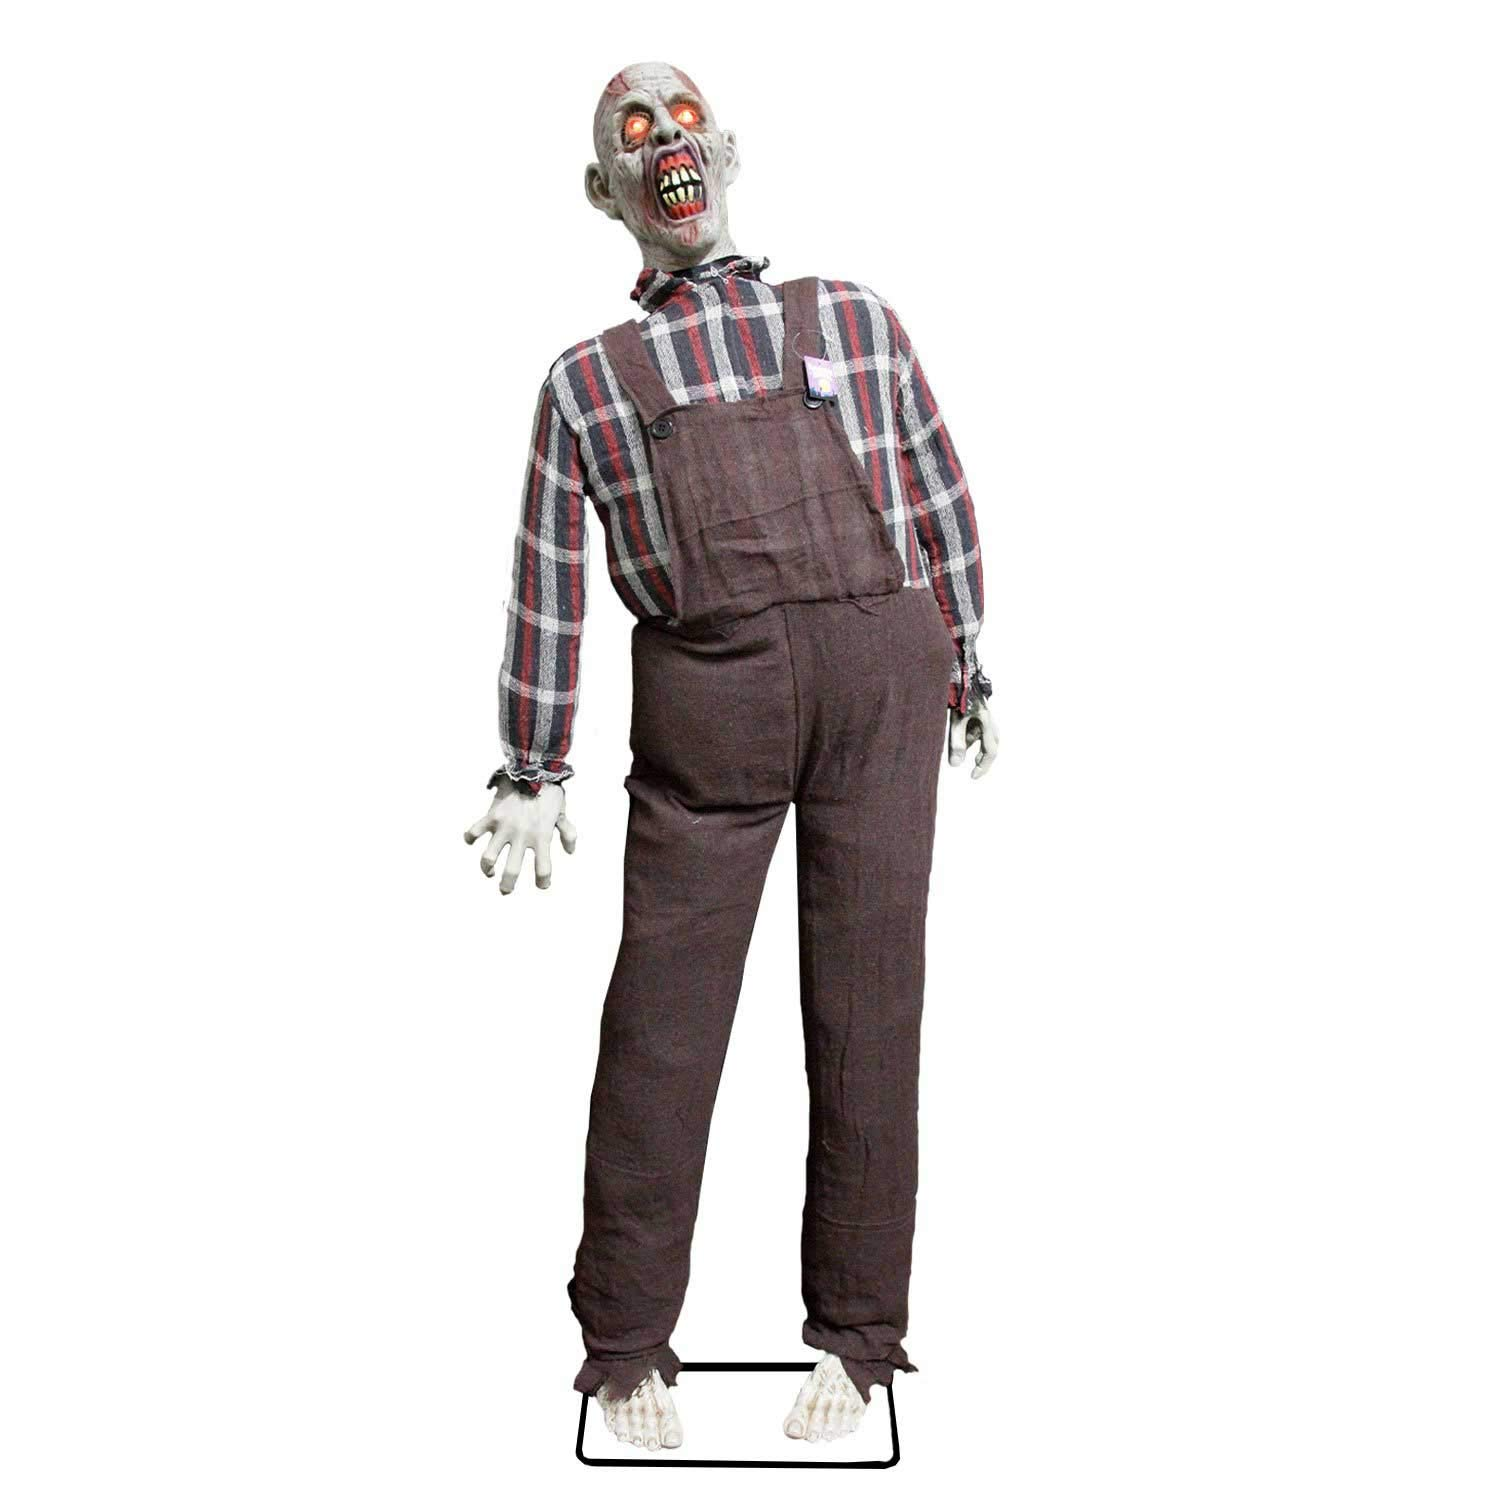 Halloween Haunters Life Size Stand Up Speaking Farmer Zombie Animated Rocking Moving Torso Prop Decoration with Red Light Up Eyes - Screams Brains, Dead Body Corpse - Haunted House Graveyard, Entryway by Halloween Haunters